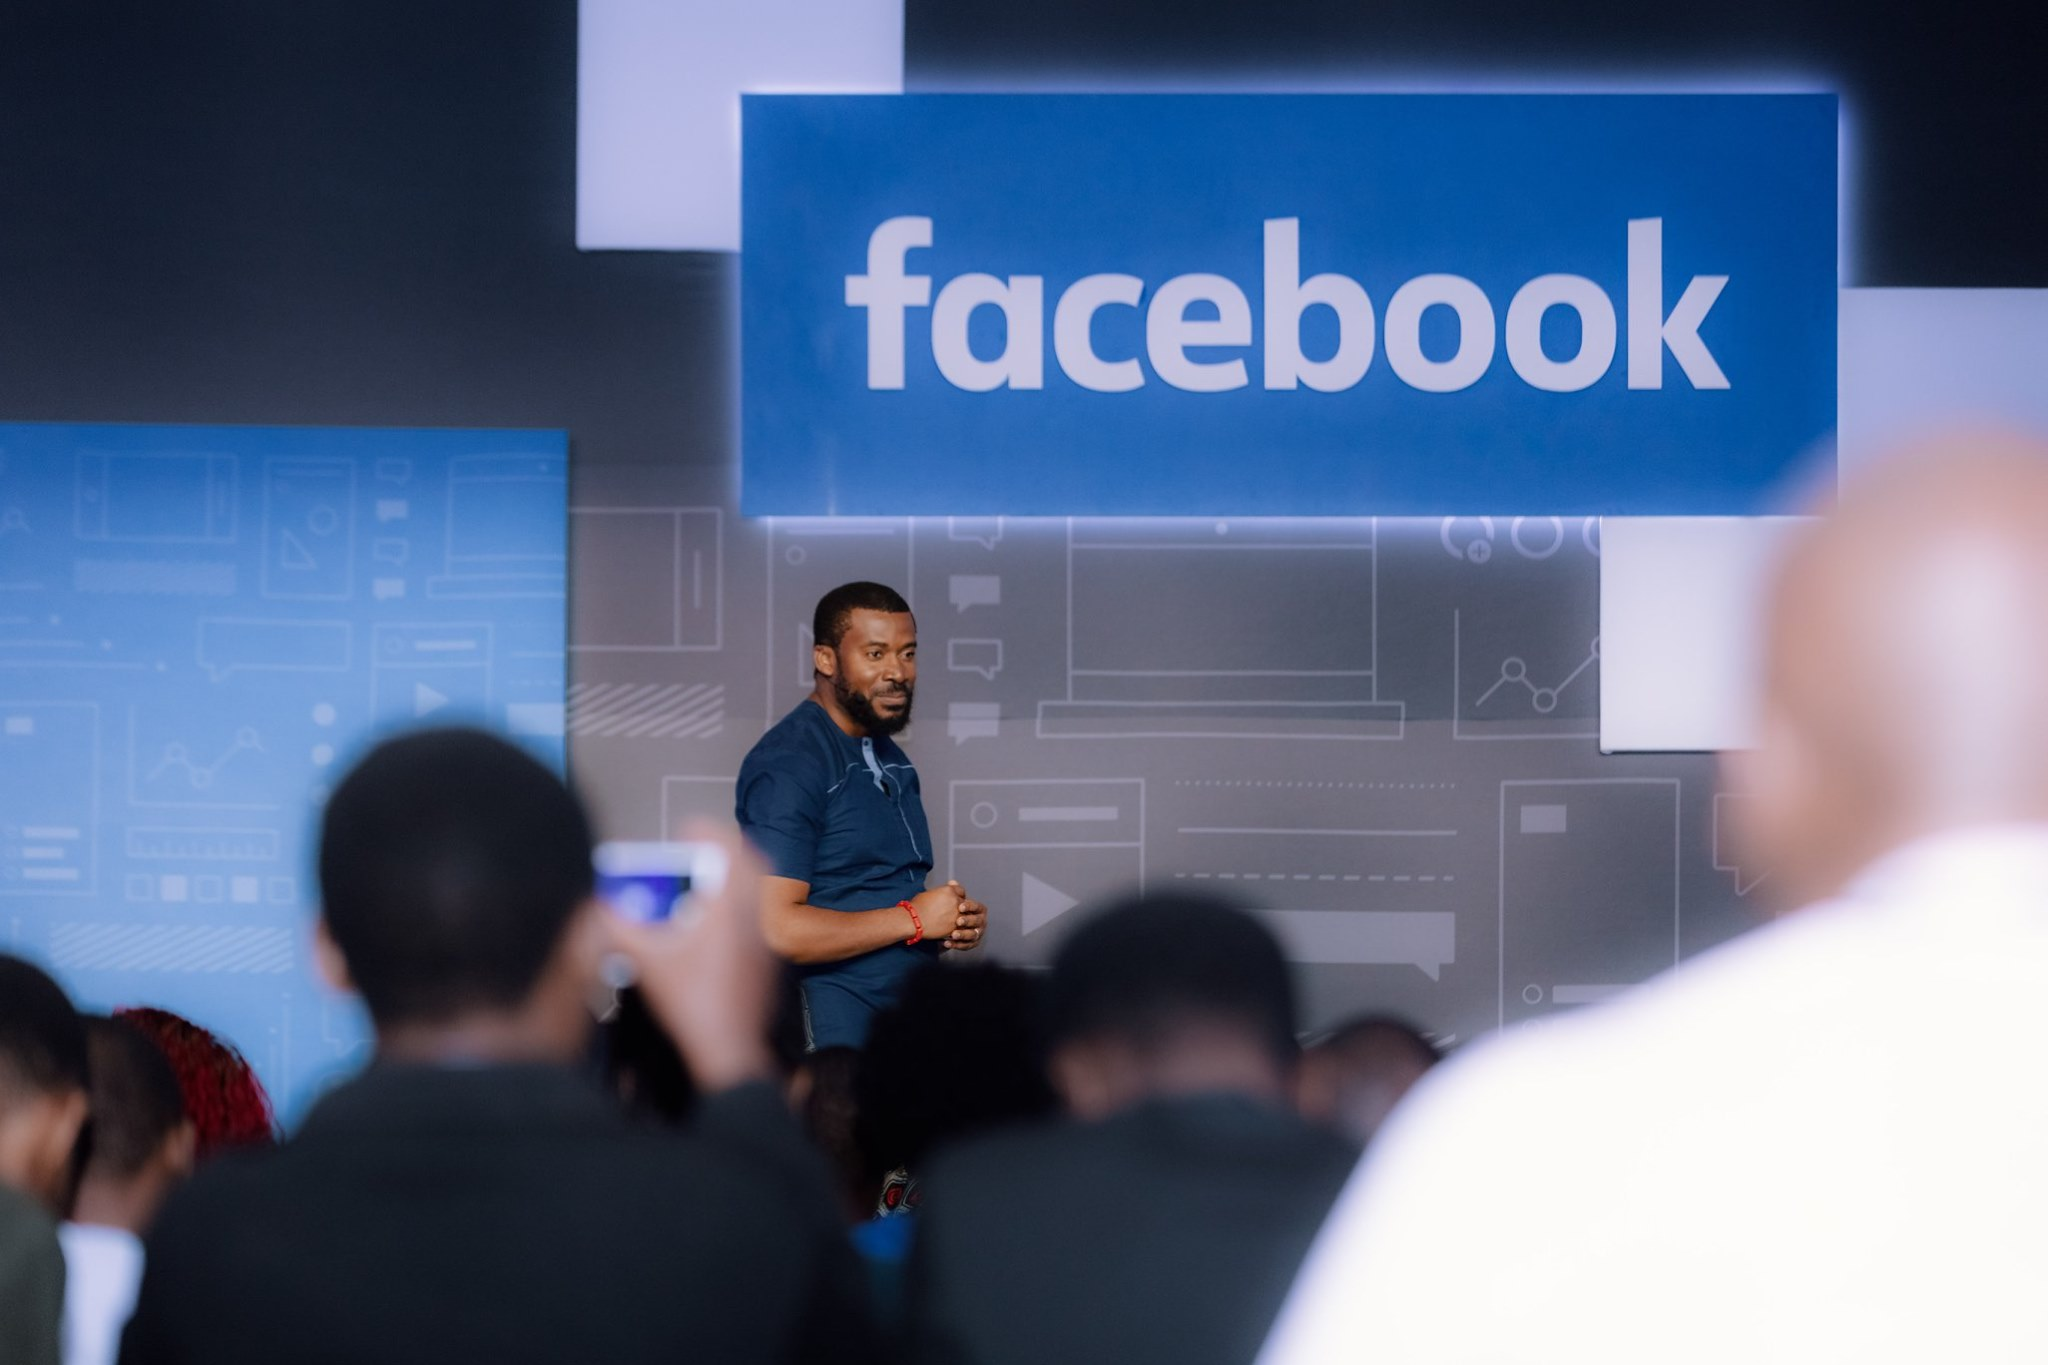 facebook africa office lagos nigeria engineering software Nairobi developer event